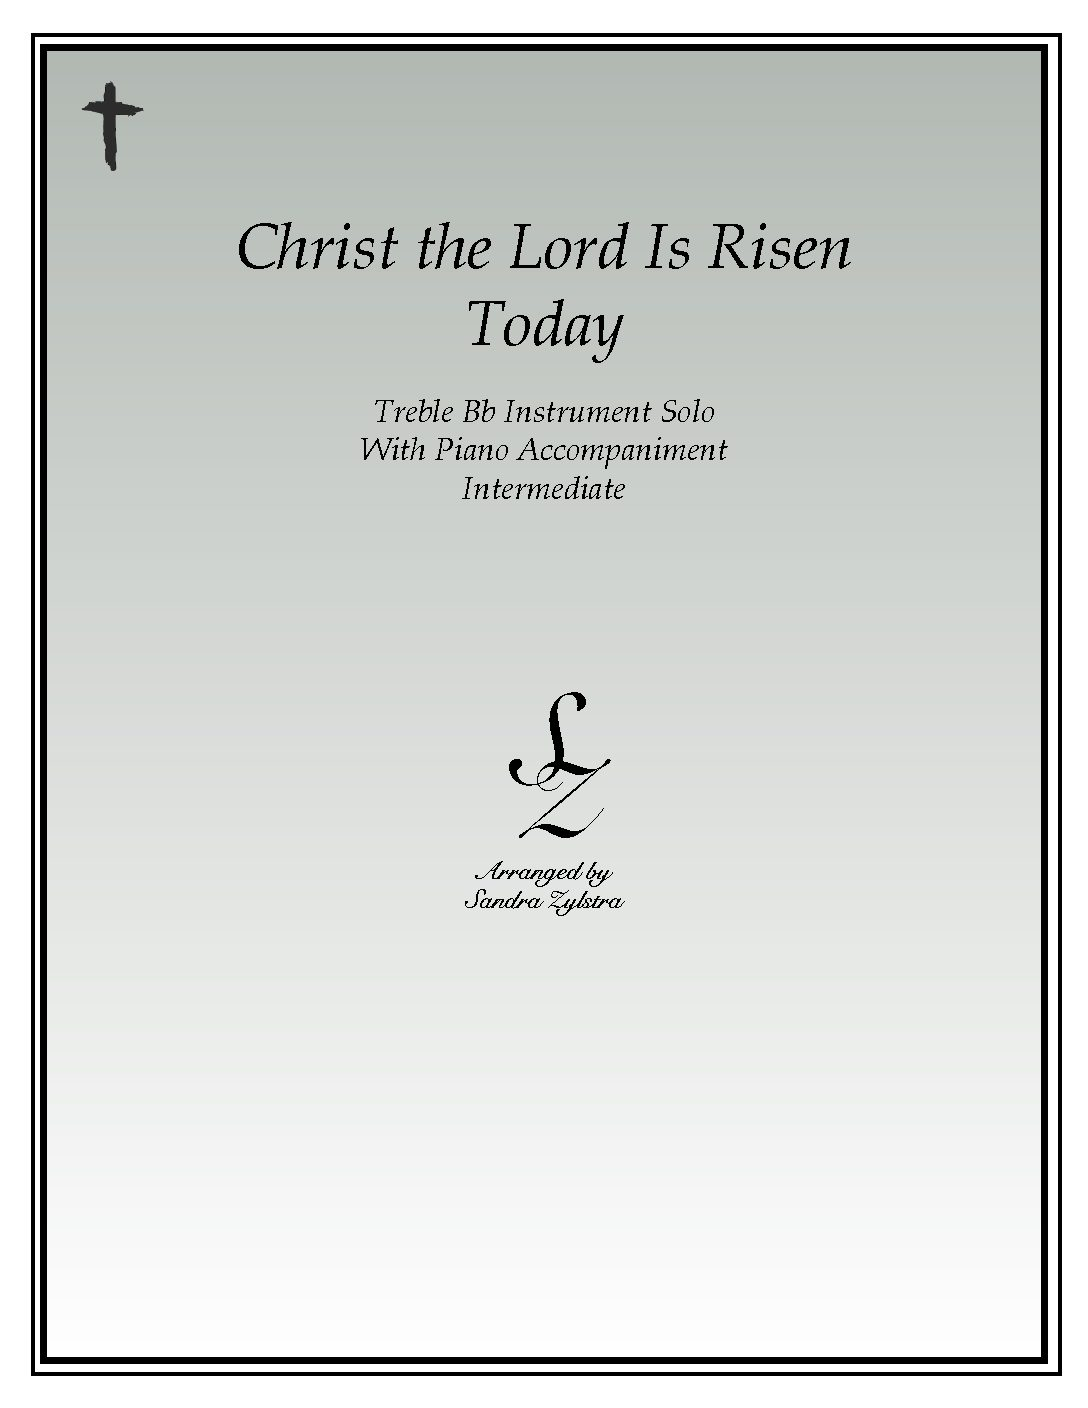 Christ The Lord Is Risen Today -Treble Bb Instrument Solo